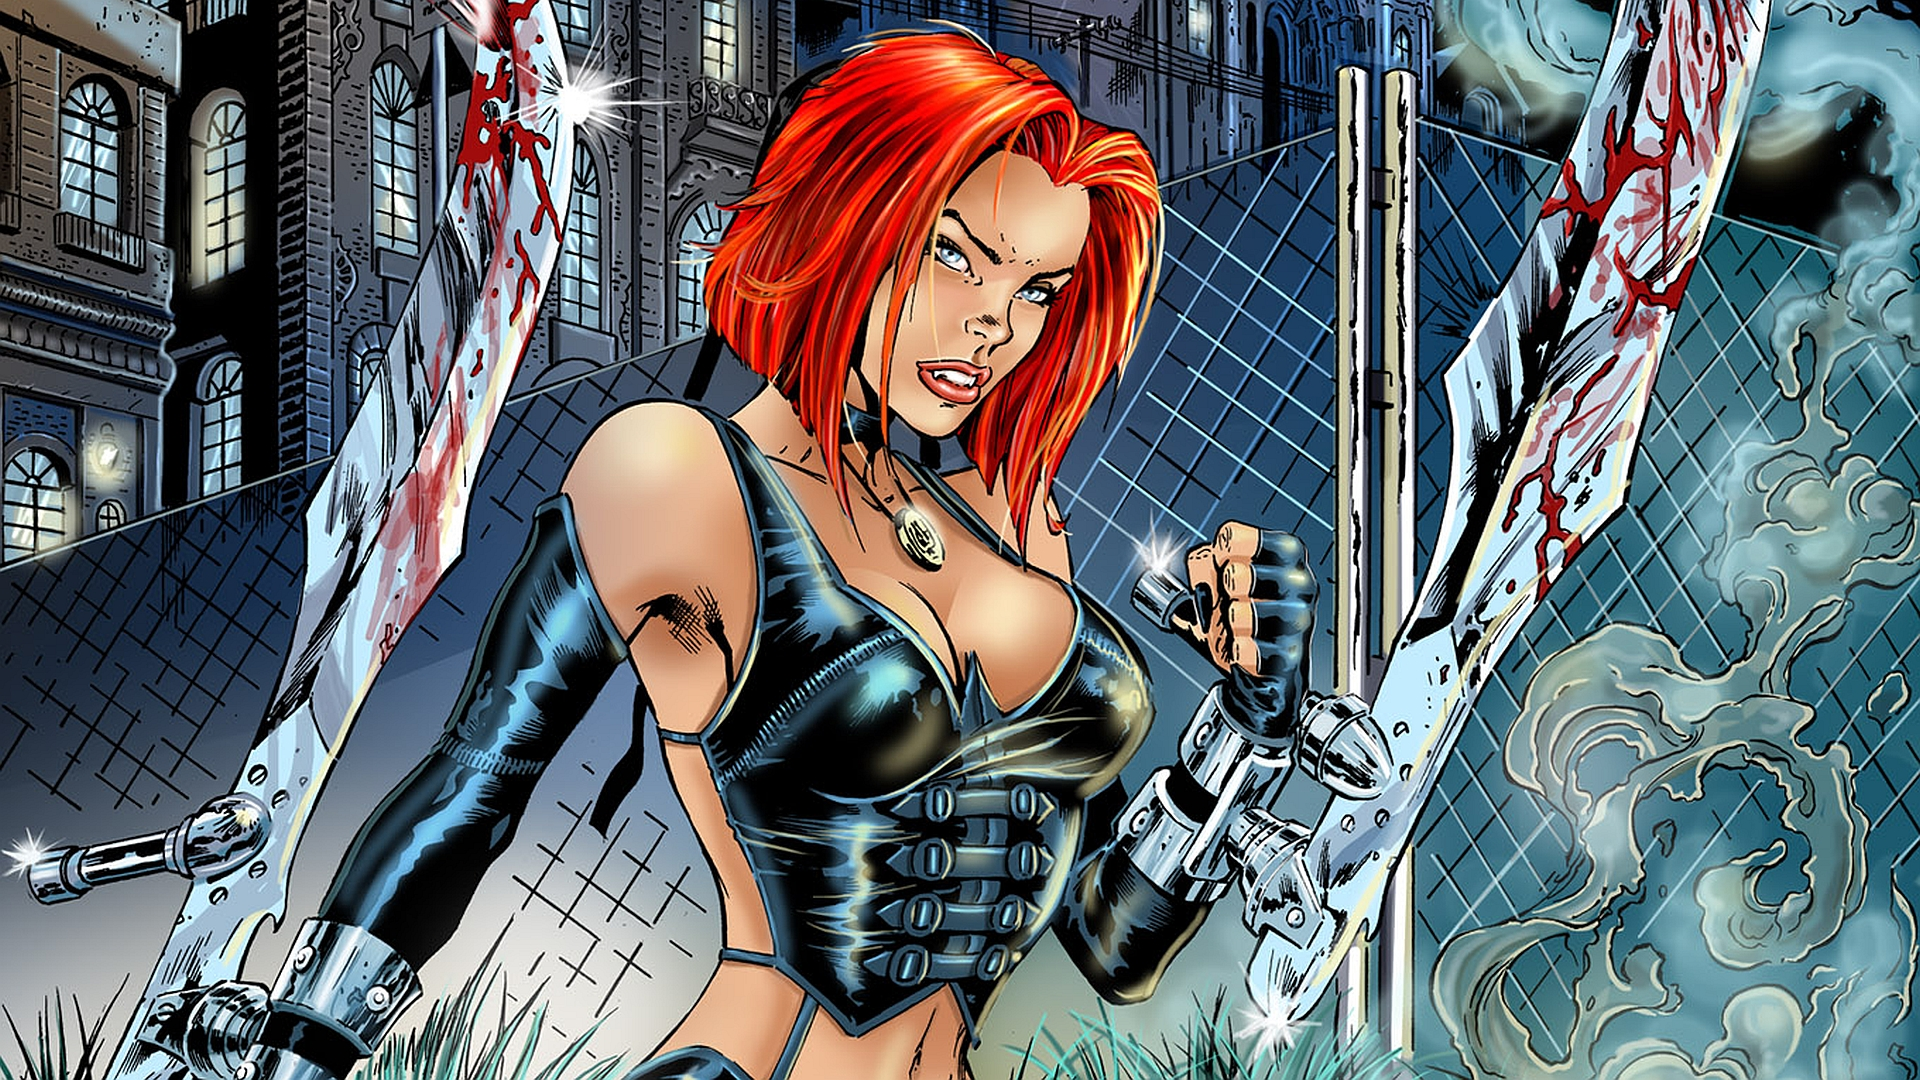 bloodrayne wallpaper 1920x1080-#6